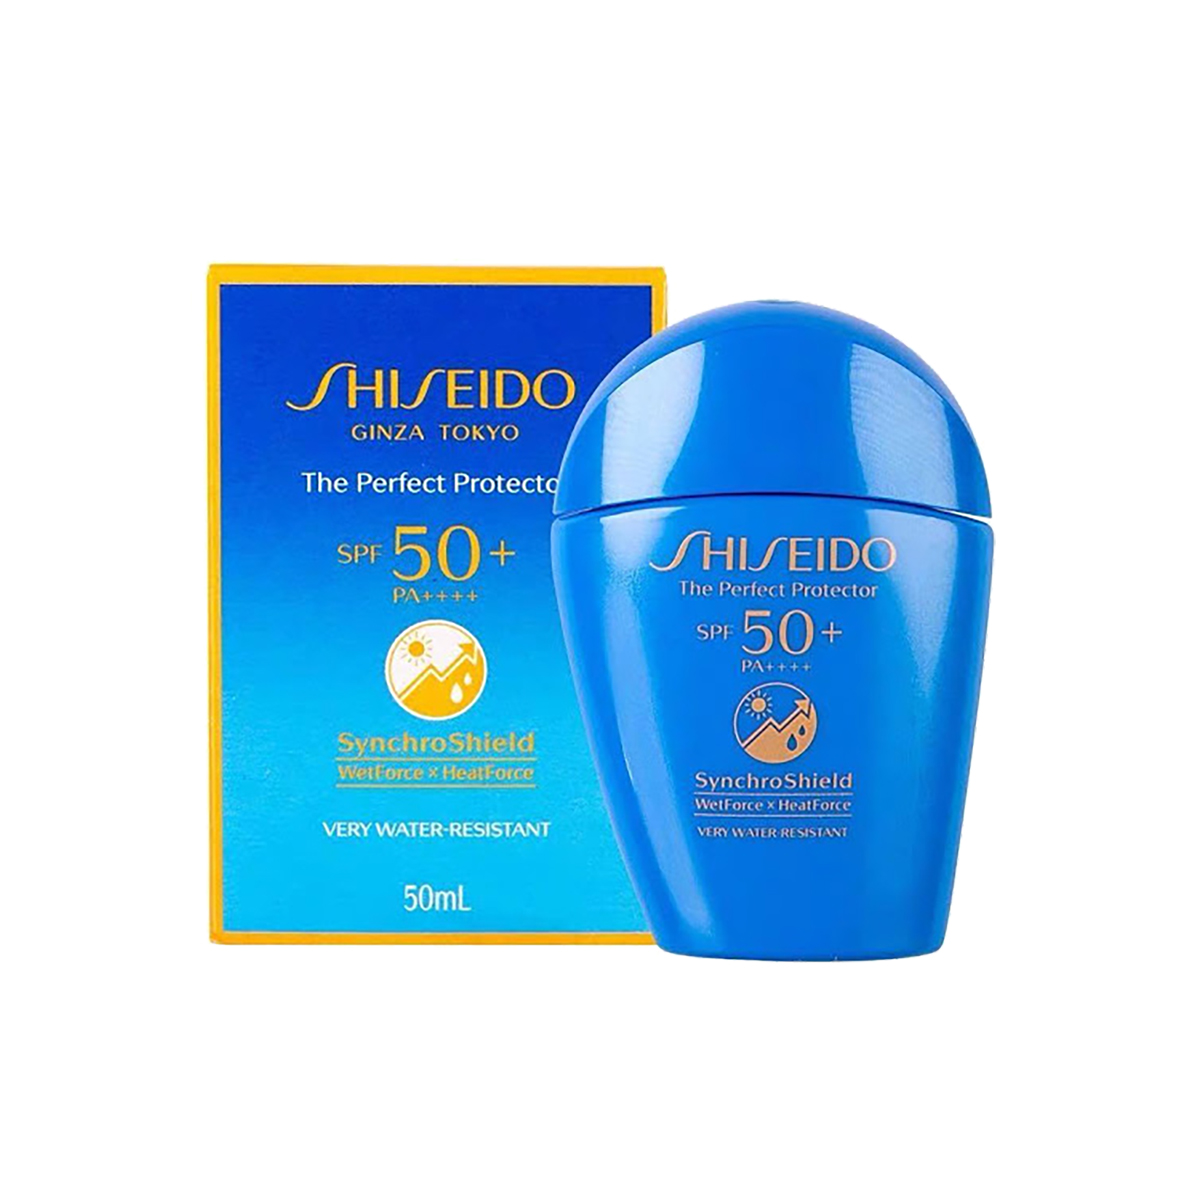 Buy Shiseido The Perfect Protector/Synchro Shield, Very Water Resistant, SPF50+ Pa++++ Sunscreen 50ml  [Ship from SG / 100% Authentic] Singapore